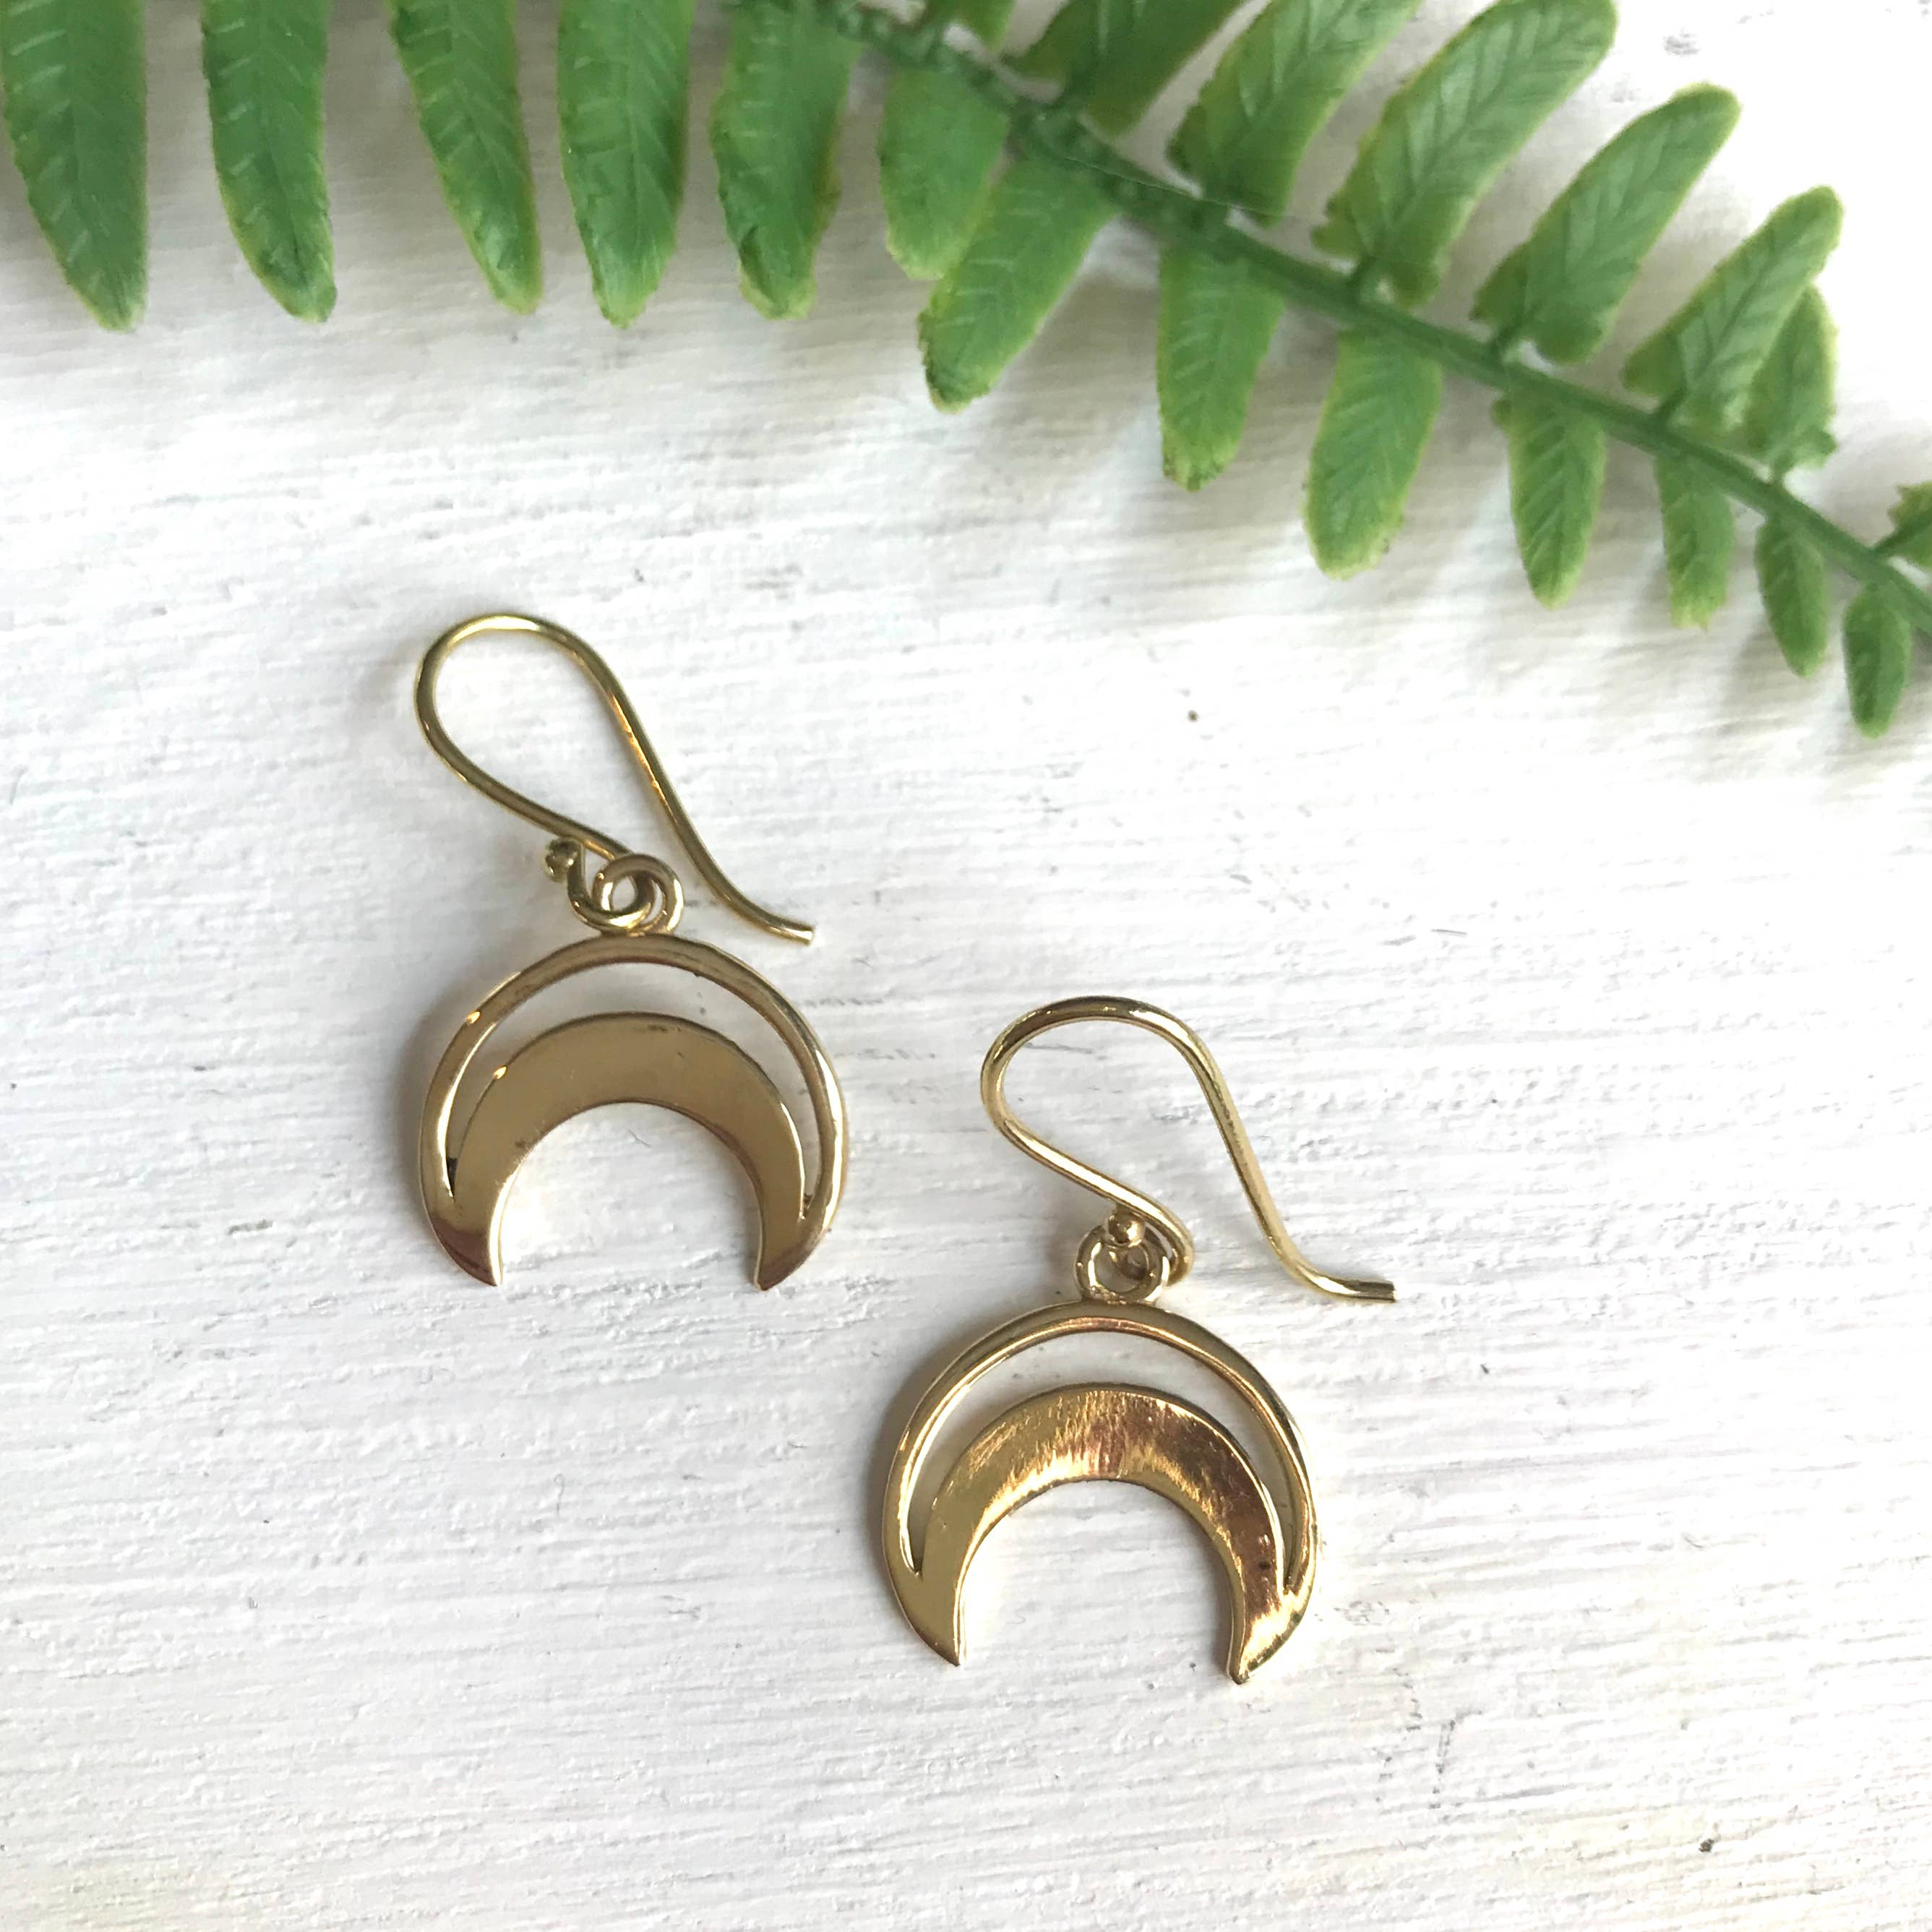 Brass Crescent Moon Earrings